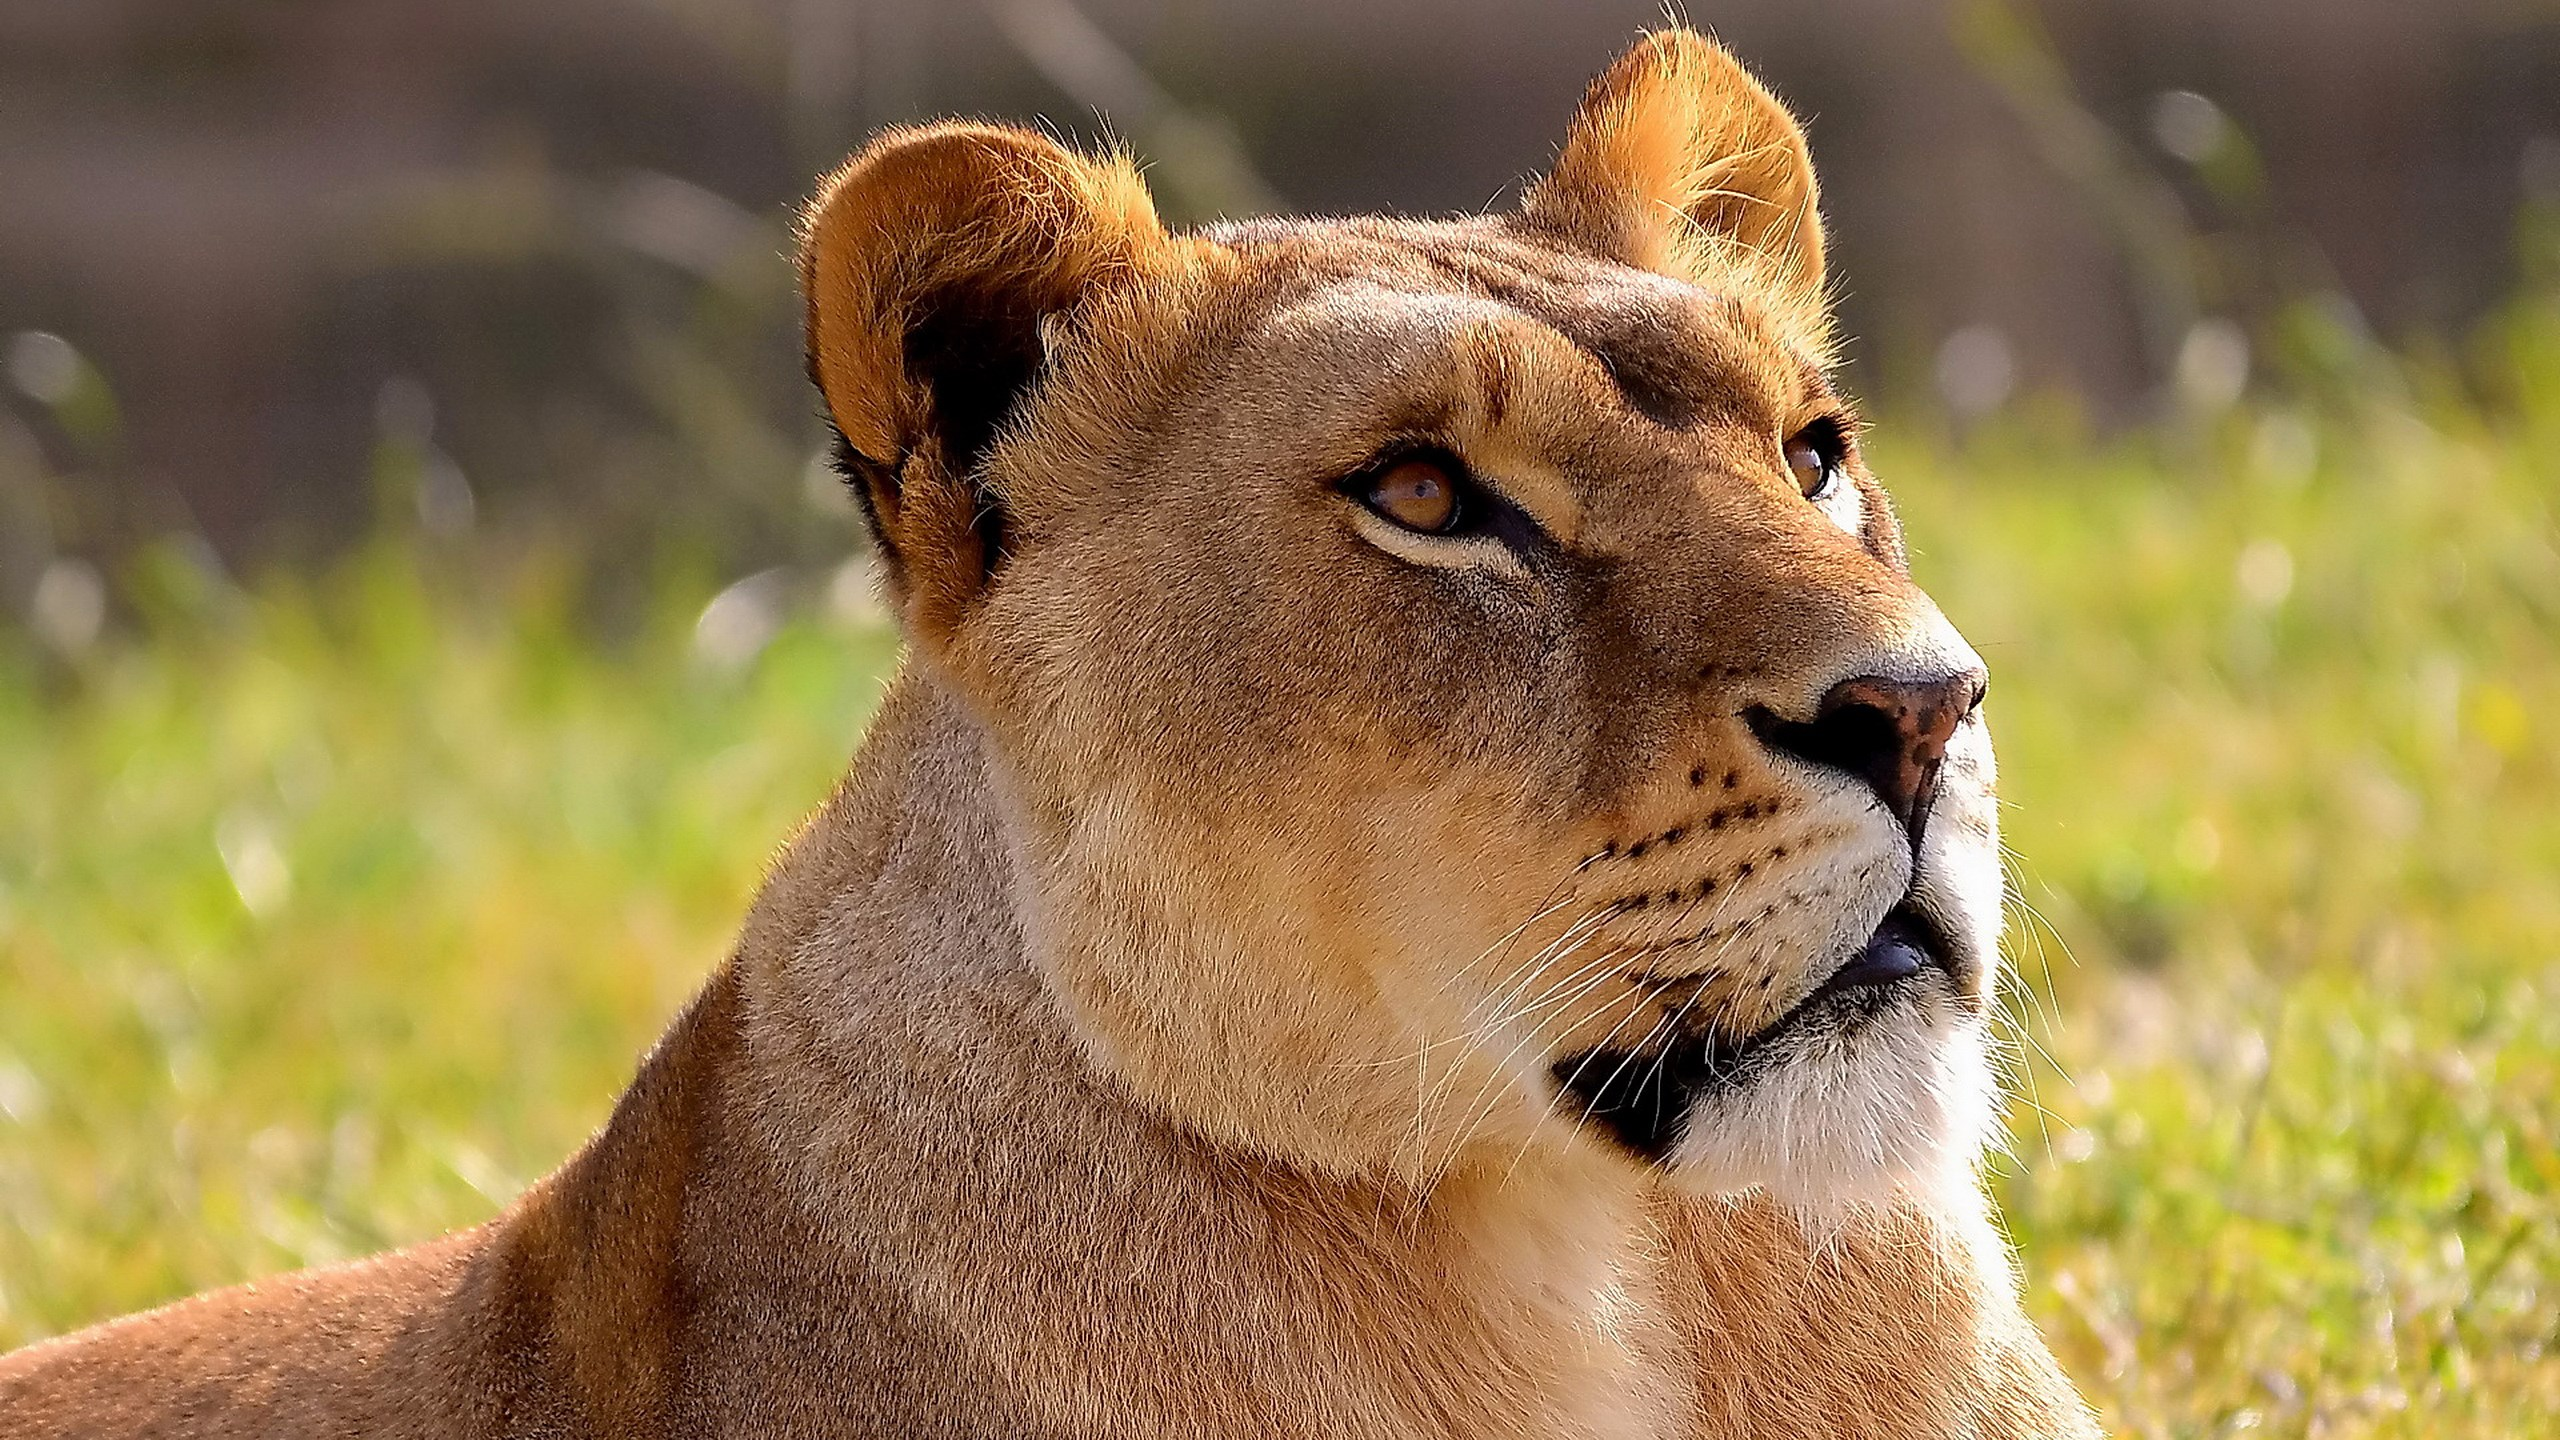 Lioness hd wallpapers » Collections of HDQ (up to 4k) wallpapers and ...